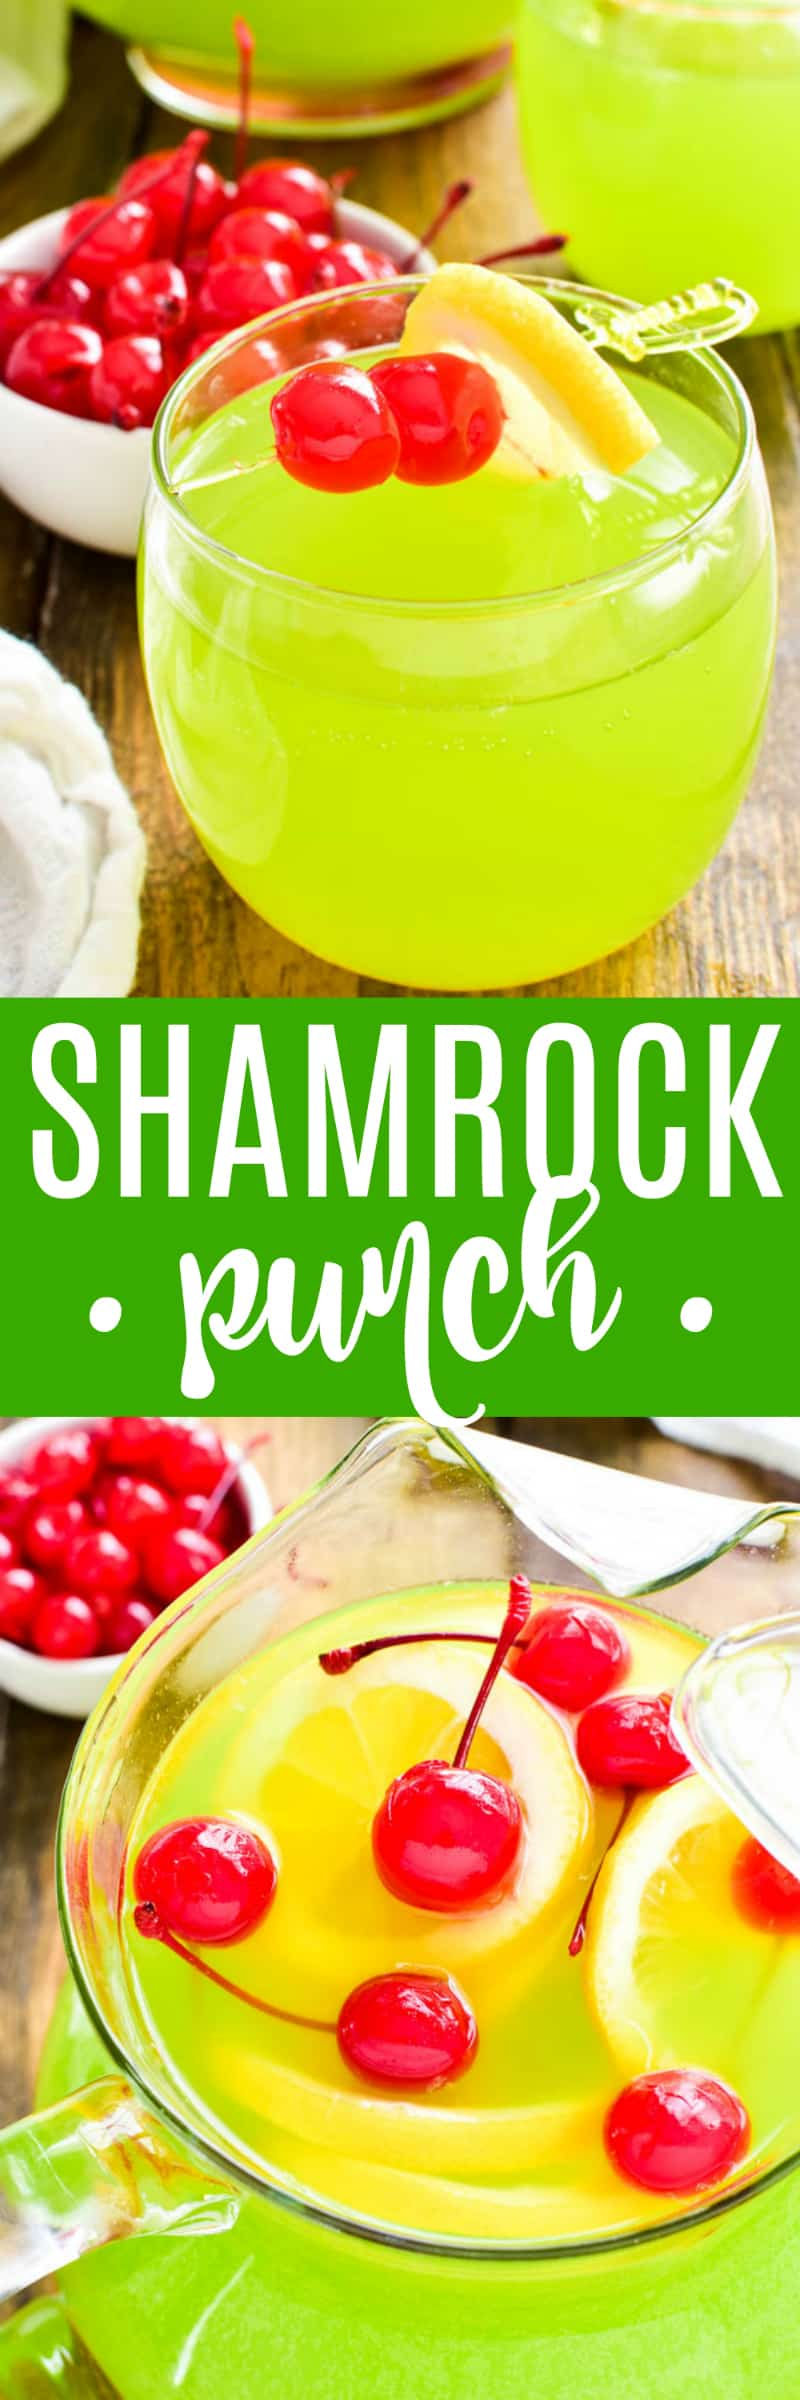 Shamrock Punch is the ultimate St. Patrick's Day drink! Made with Midori, pineapple juice, vodka, and a splash of soda, this punch is fizzy, sweet, and perfectly green.  Make it in a punchbowl or by the pitcherful....and it makes great shots, too. Any way you sip it, this punch is exactly what your St. Patrick's Day party needs!